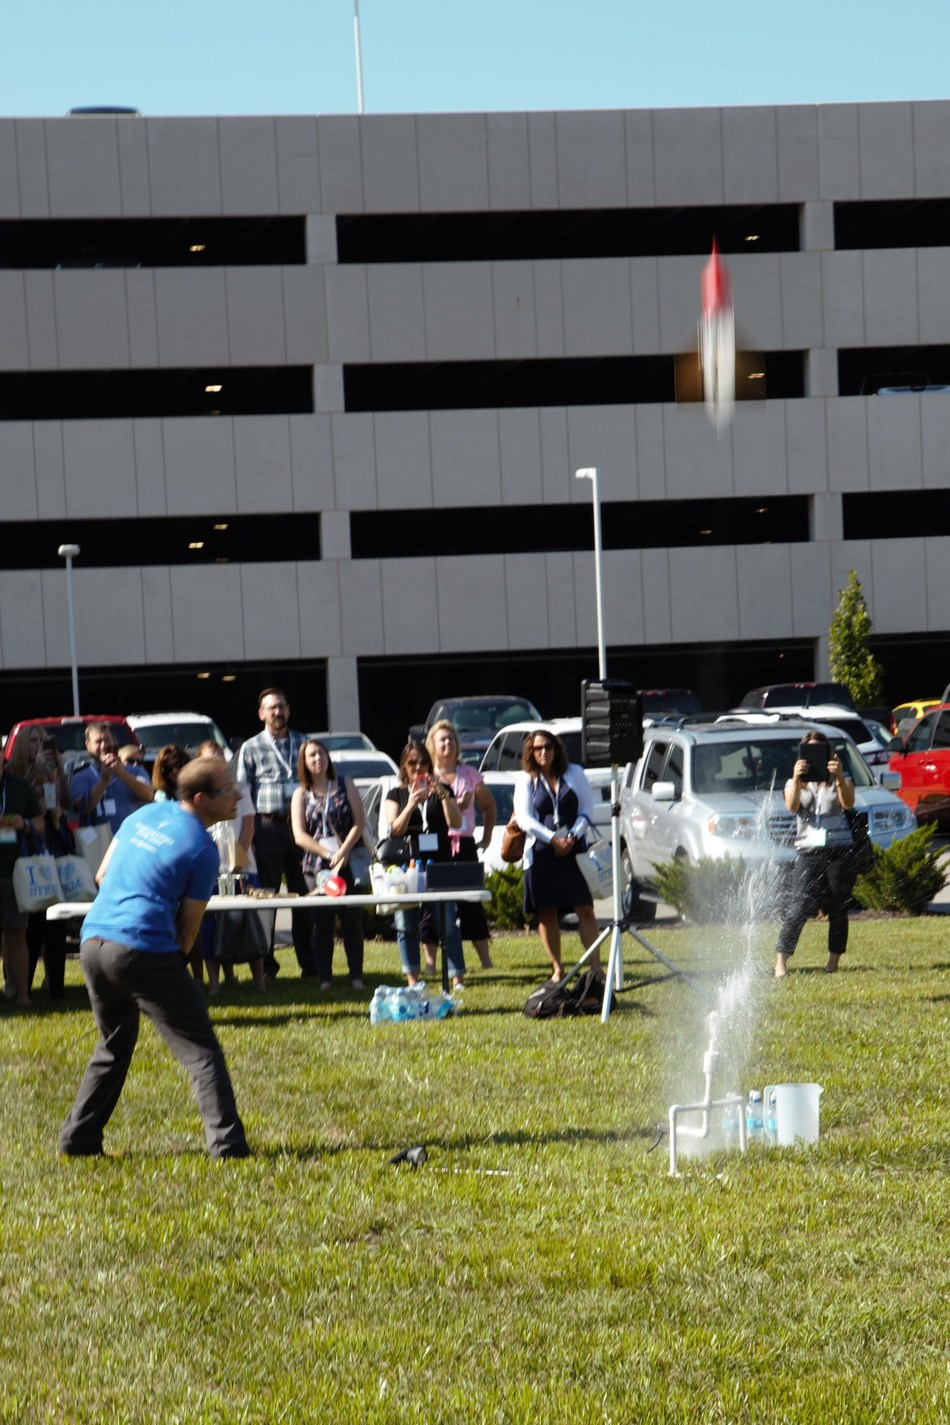 Burns & McDonnell employee-owners demonstrated engaging STEM activities to educators they could recreate for their students at school, such as launching a water bottle rocket to learn about Newton's Law of Motion.